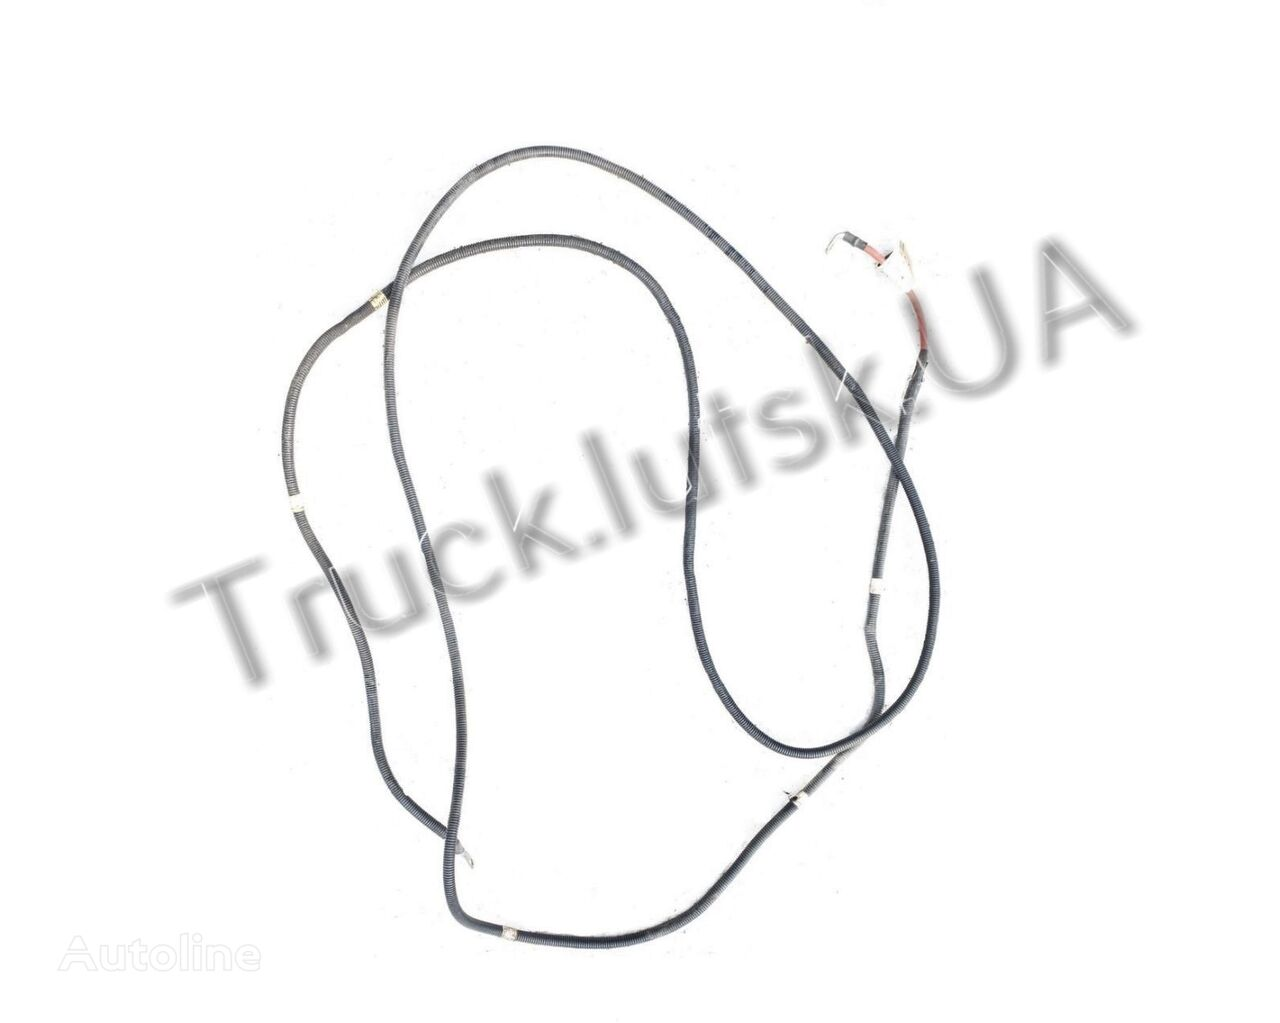 Siloviy kabel RENAULT (7421160303) other electrics spare part for tractor unit